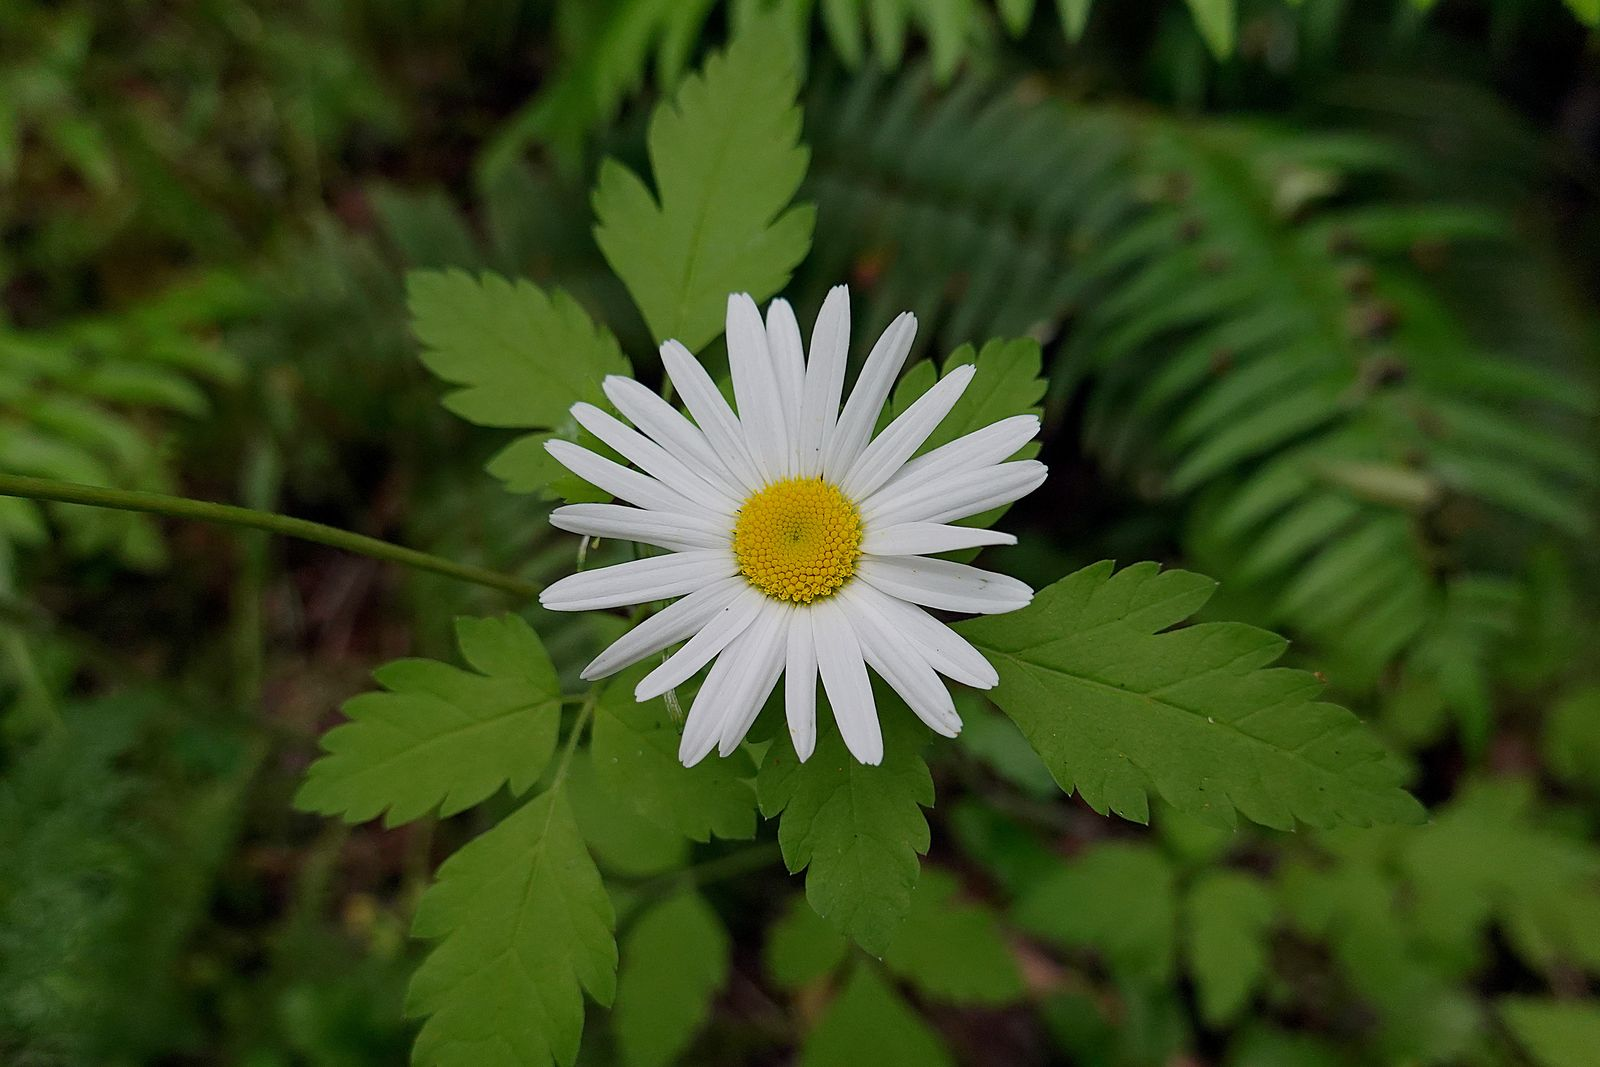 Scentless mayweed Aster Family